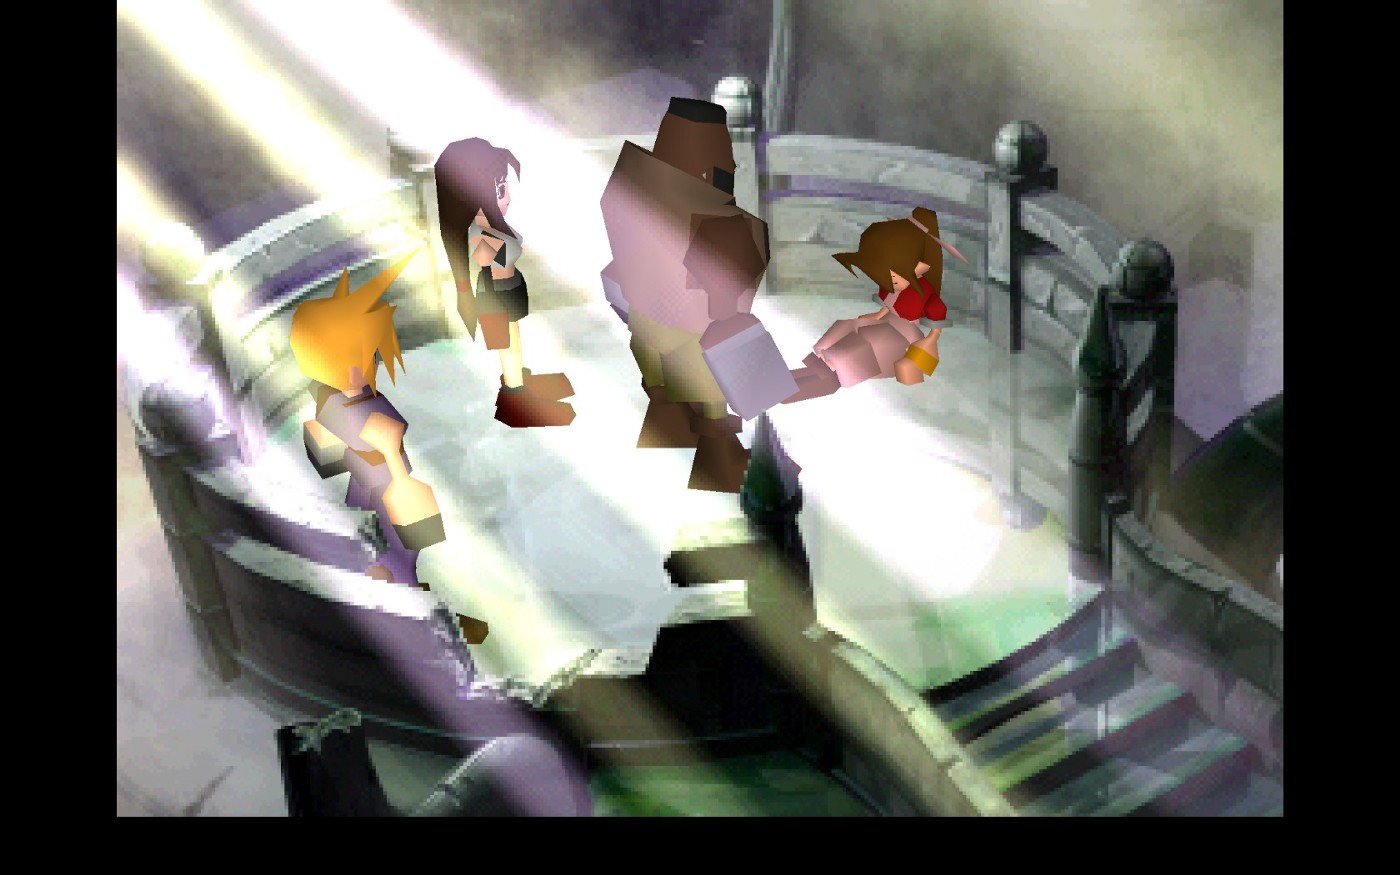 Cloud, Tifa and Barrett contemplate in silence the lifeless body of Aeris.